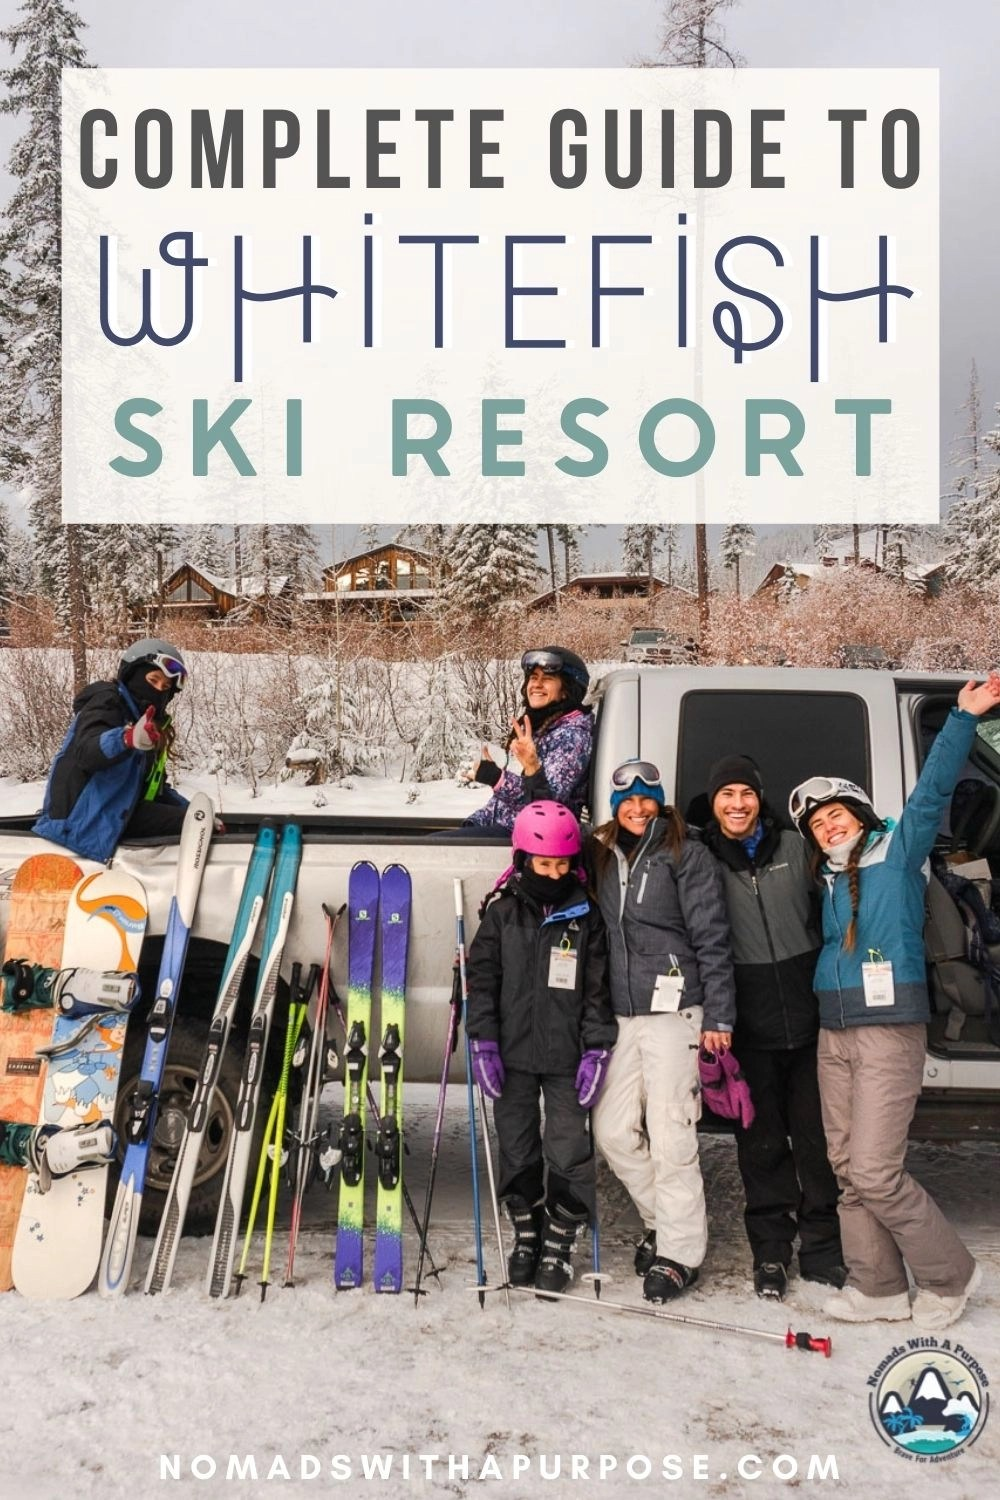 Complete Guide To Whitefish Ski Resort